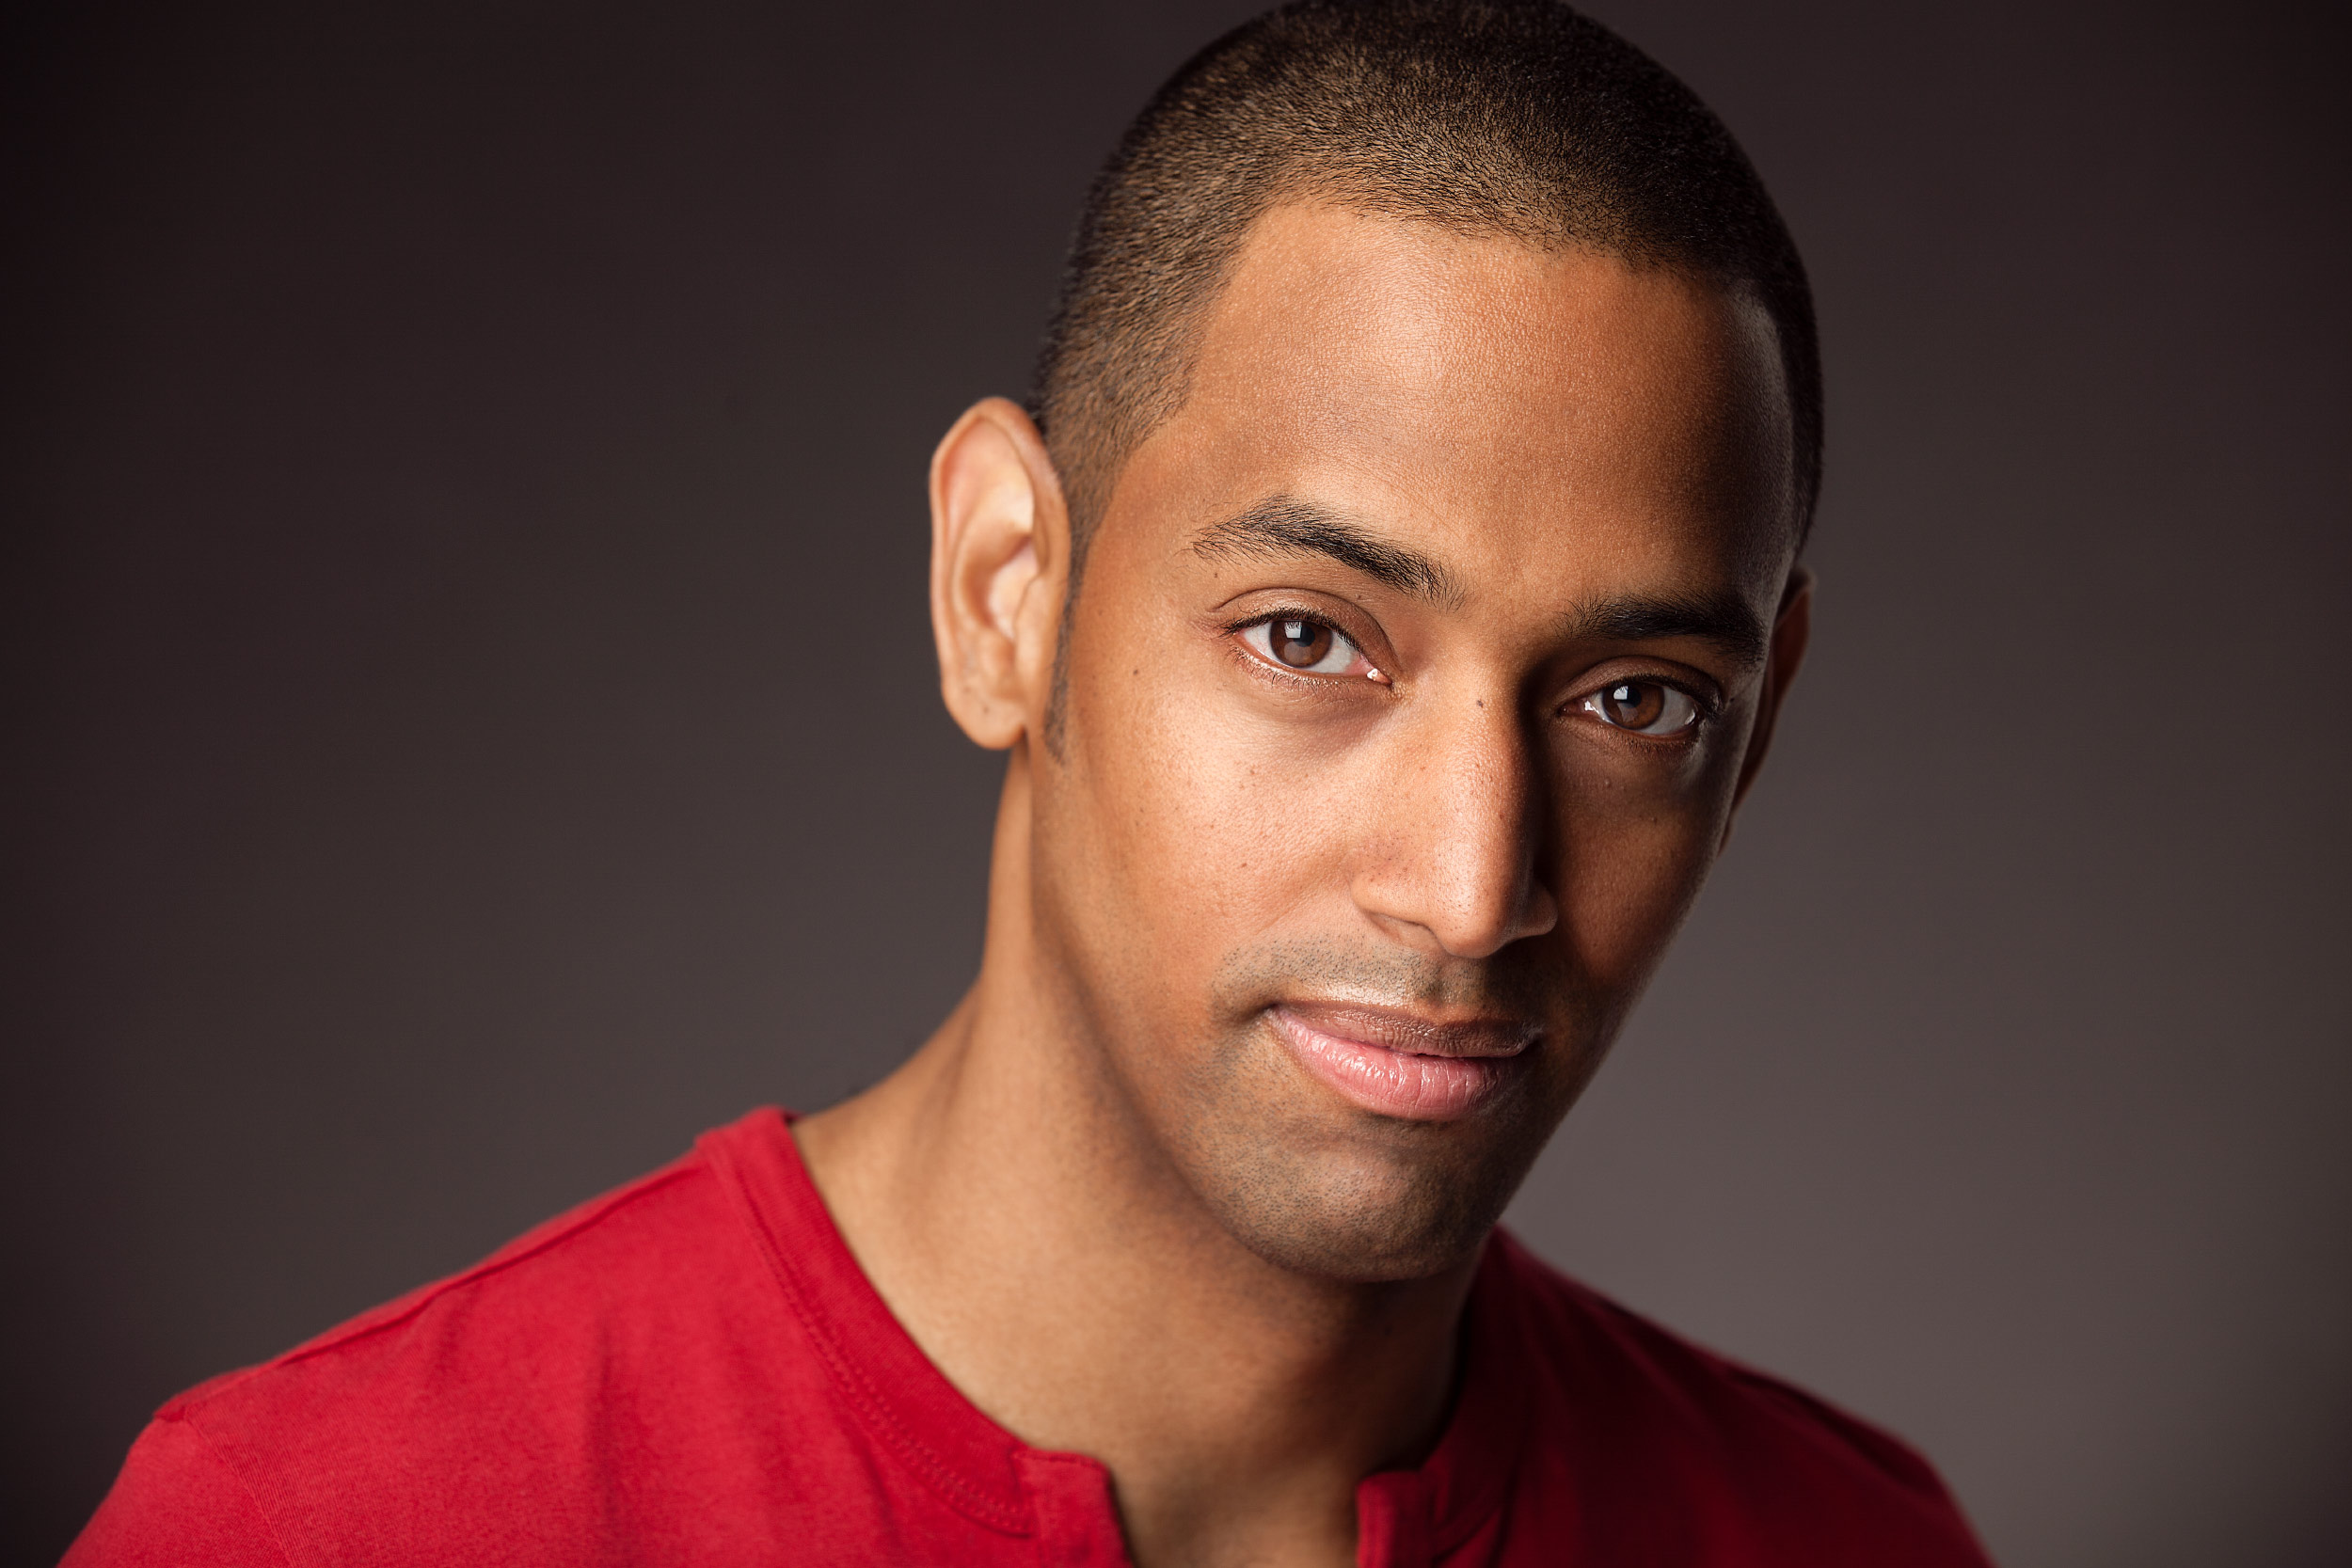 African_american_actor_headshot_023.jpg